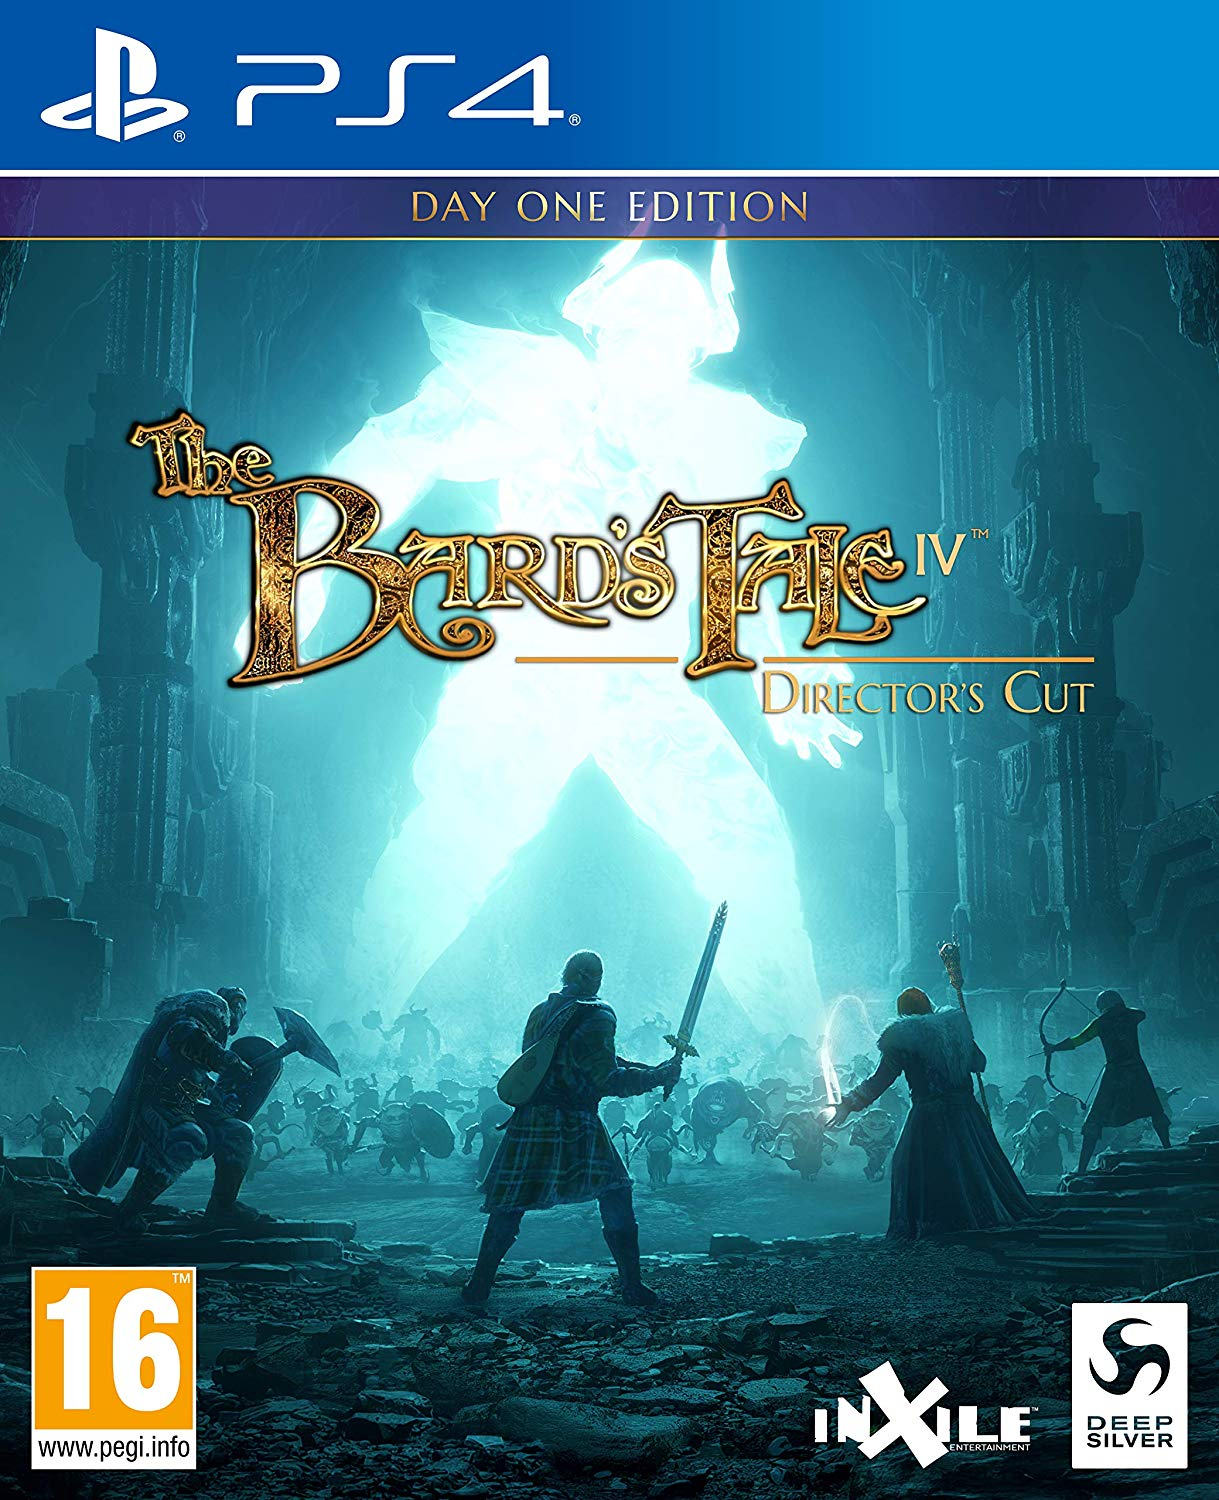 The Bards Tale IV Directors Cut Day One Edition